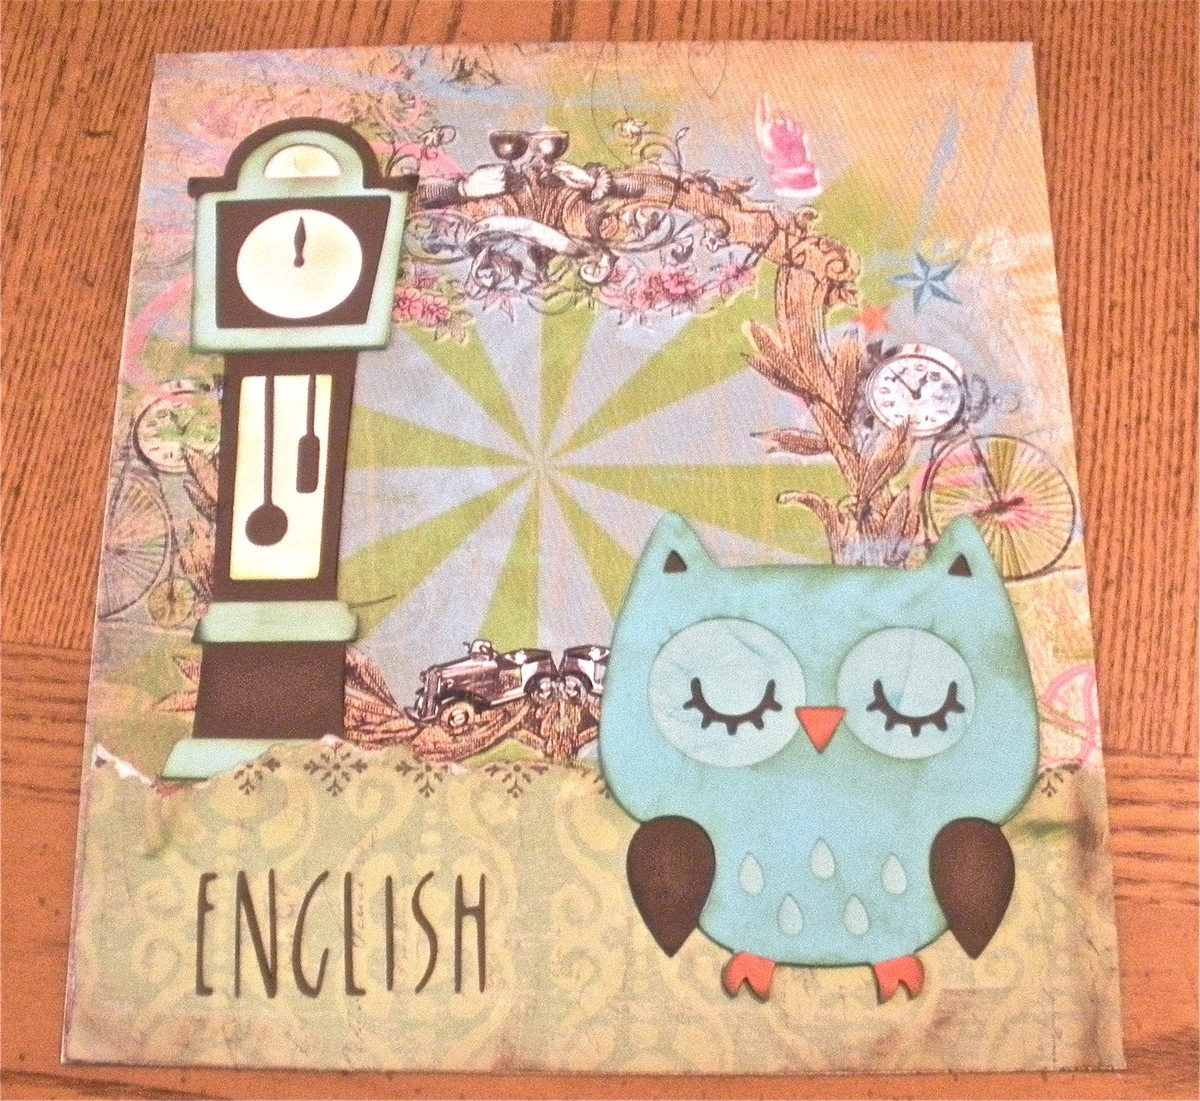 Hi My Friends And I Are Making A Wall Magazine For Our English